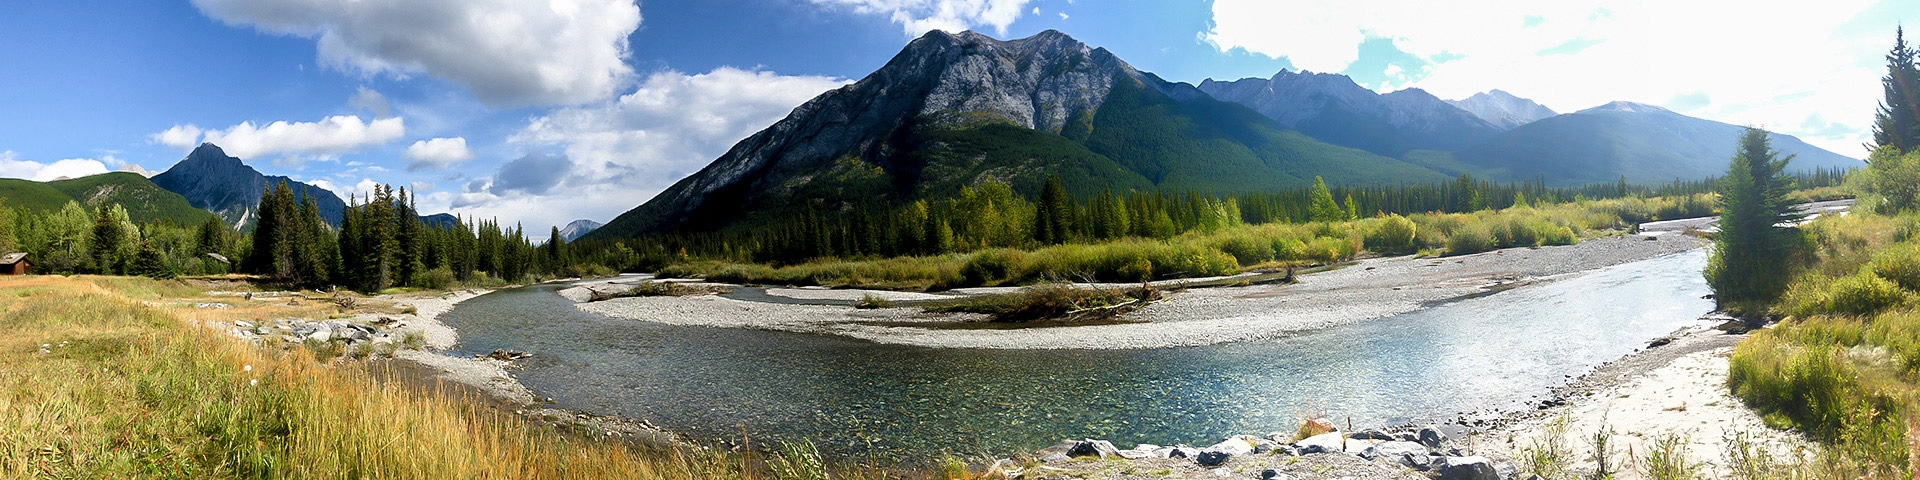 Panorama from the Troll Falls hike in Kananaskis, the Canadian Rockies